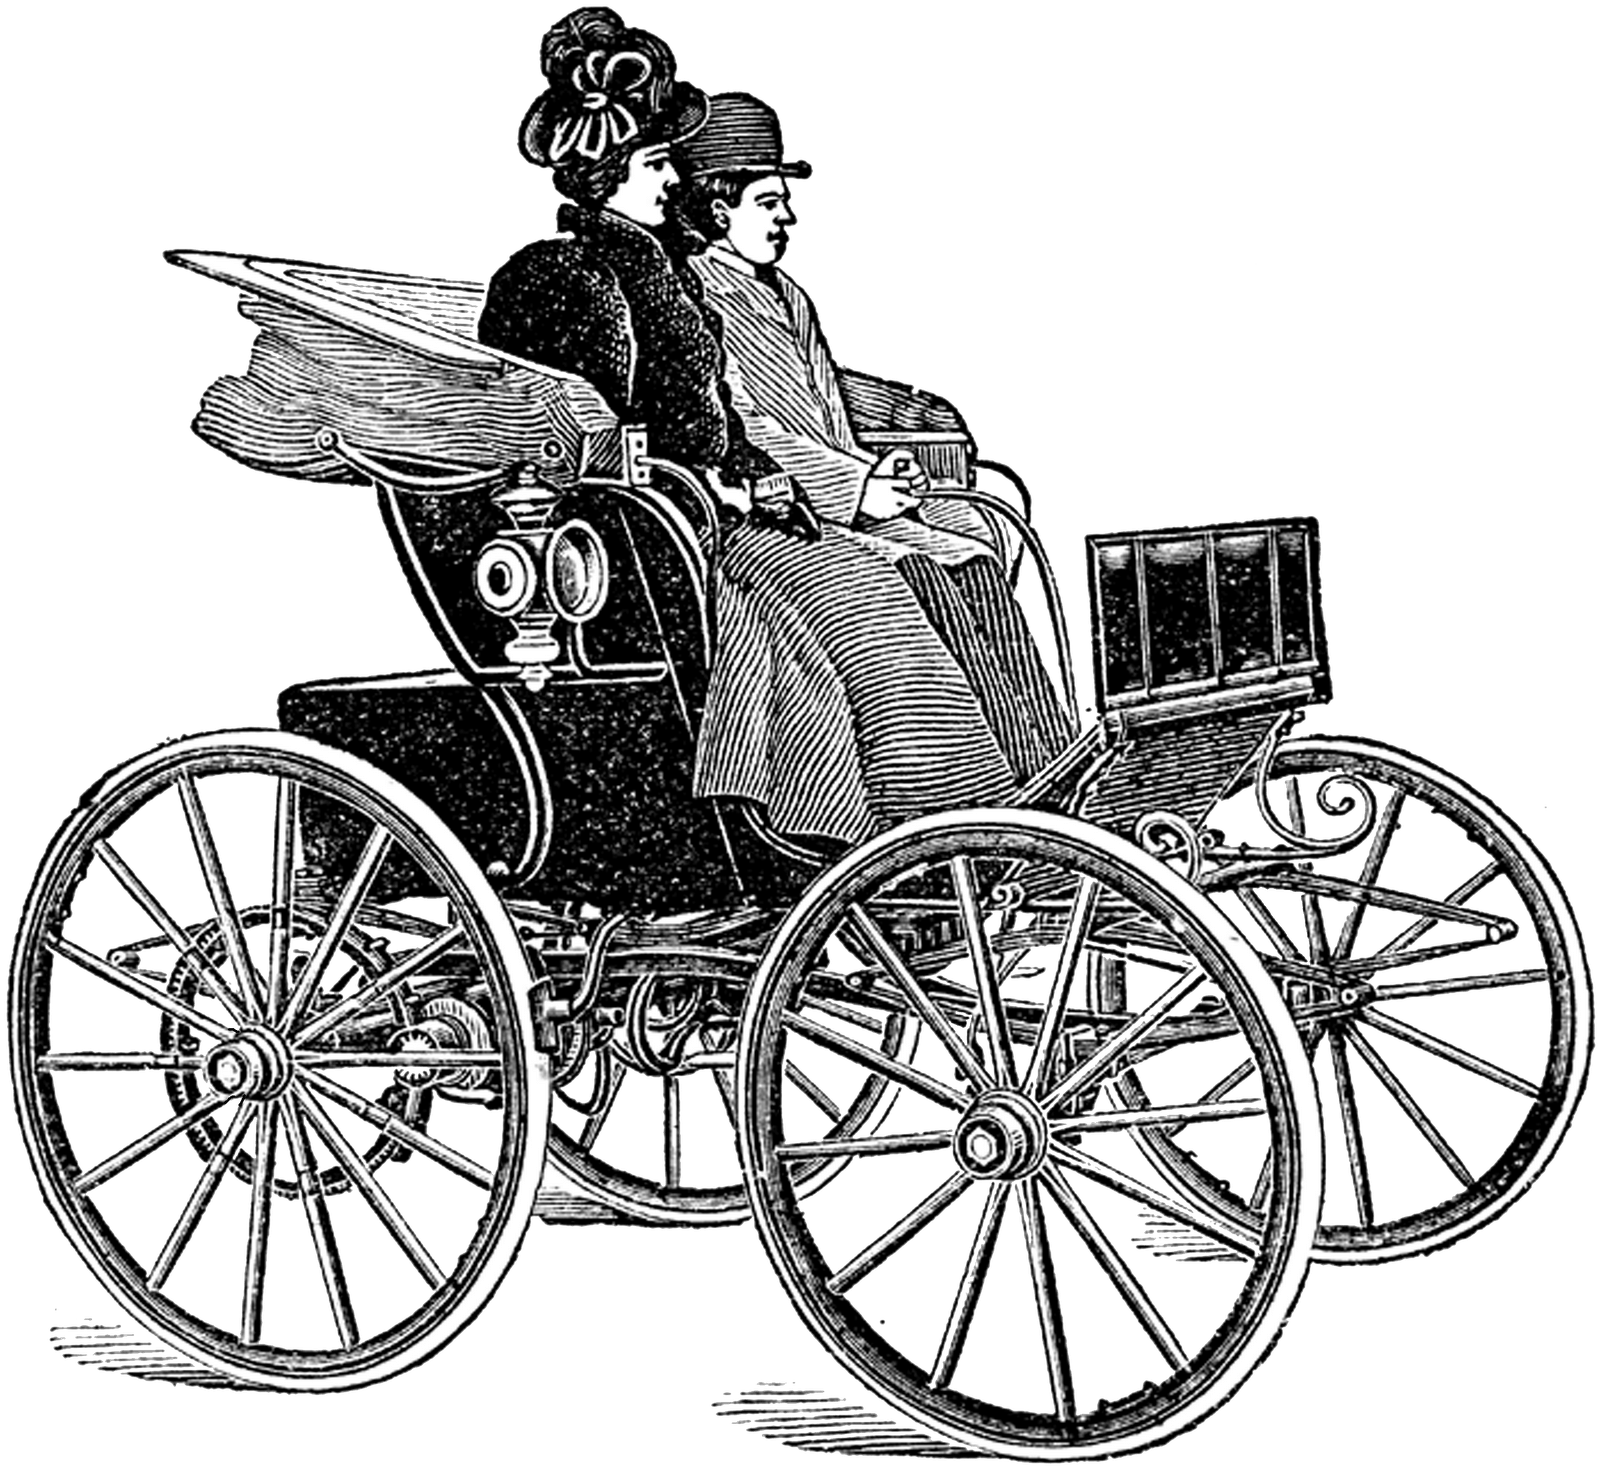 Steampunk clipart train. Vintage very old car